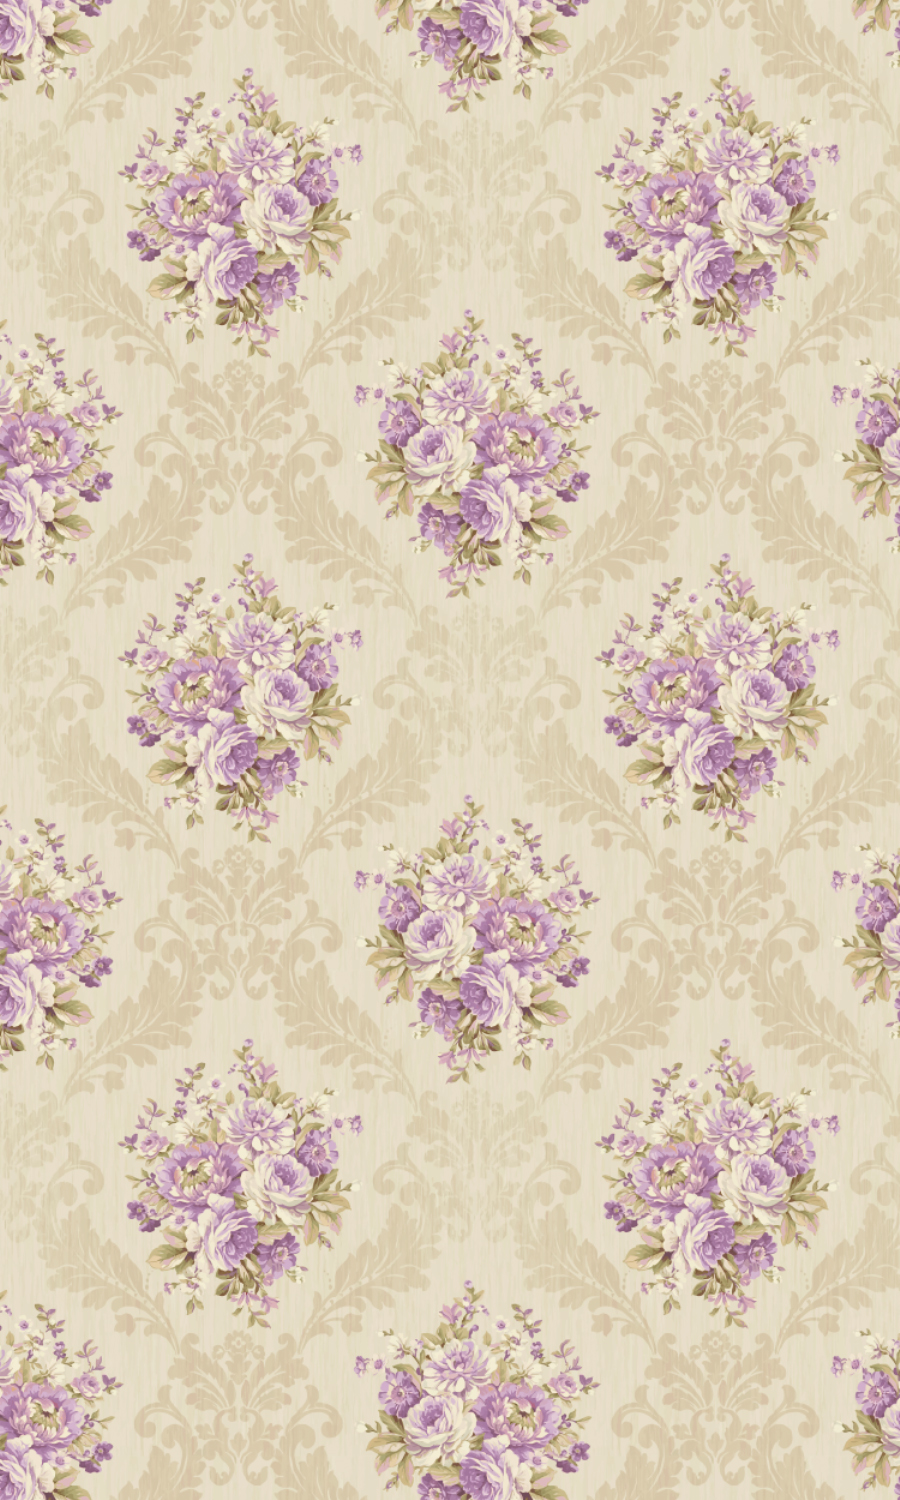 Floral Printed Custom Drapes For Living Room